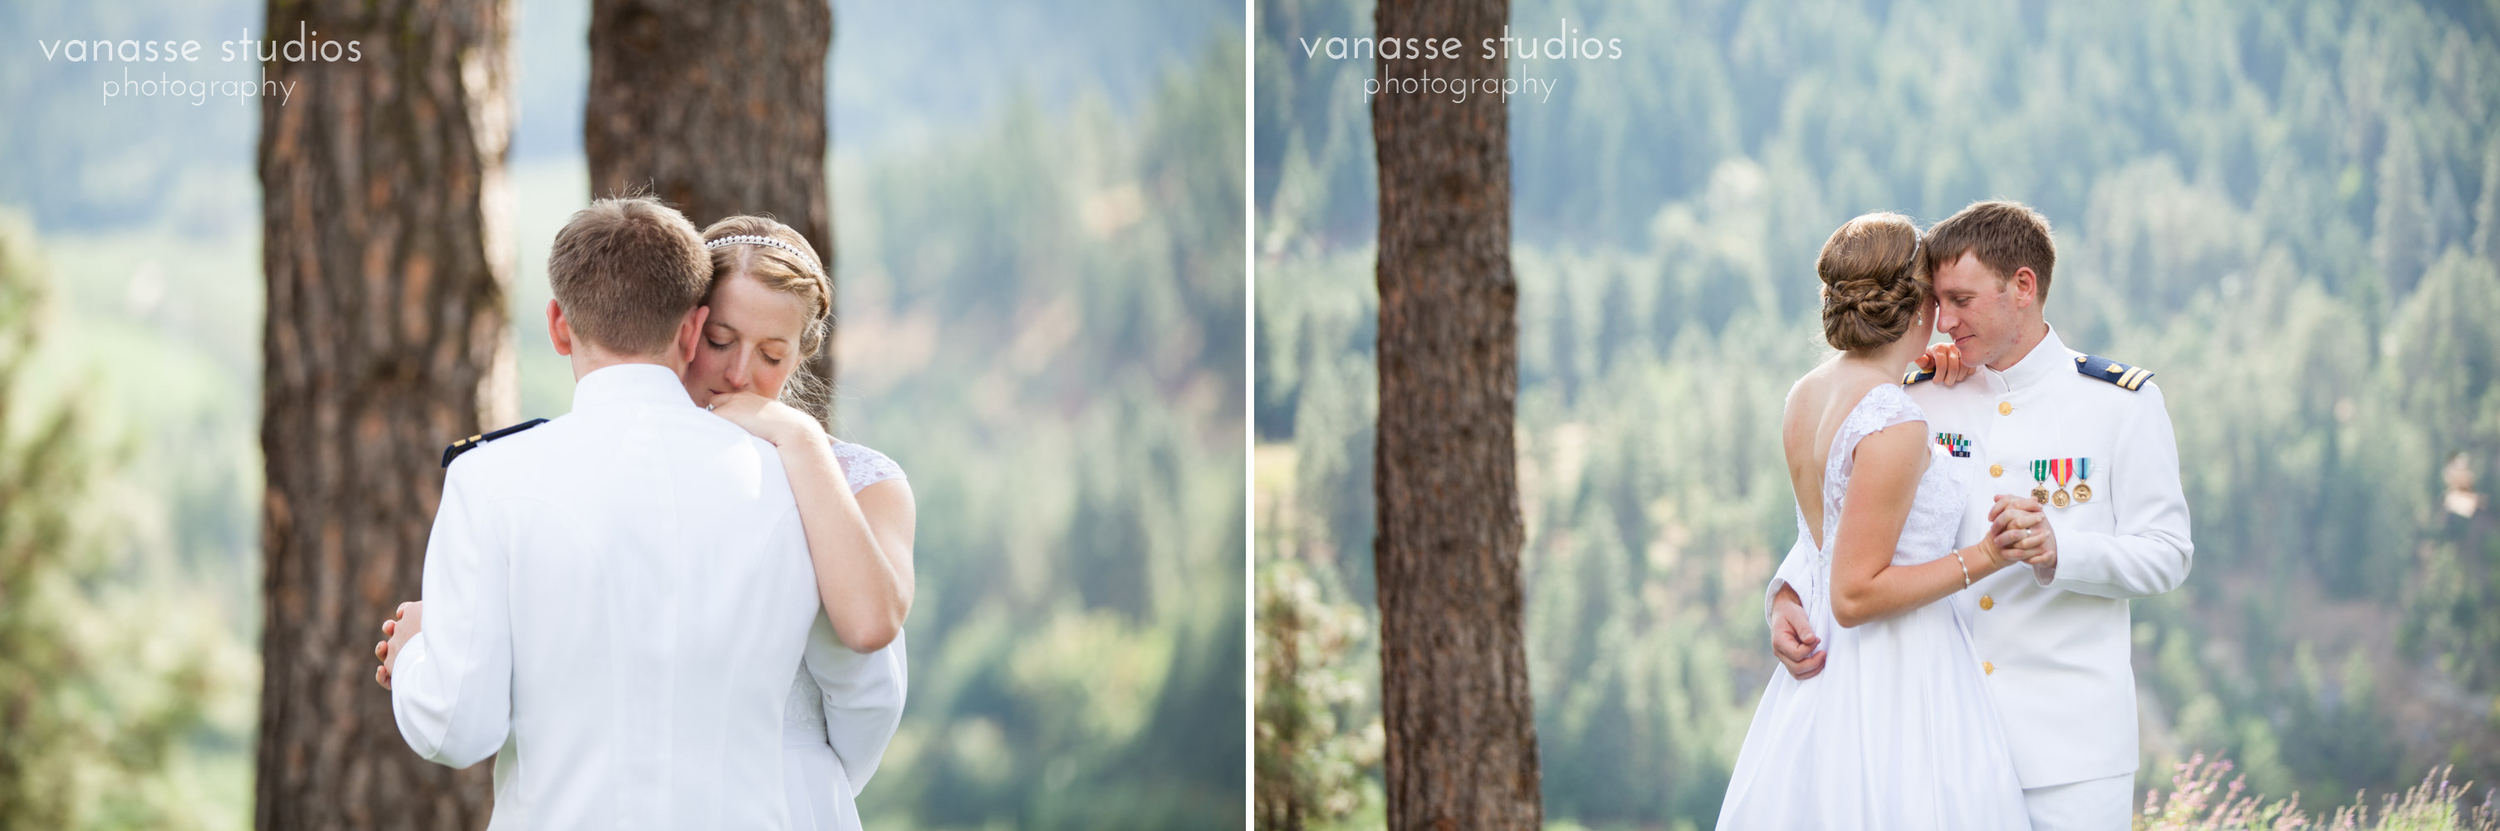 Leavenworth-Wedding-Photographers_AndreaMike_058.jpg